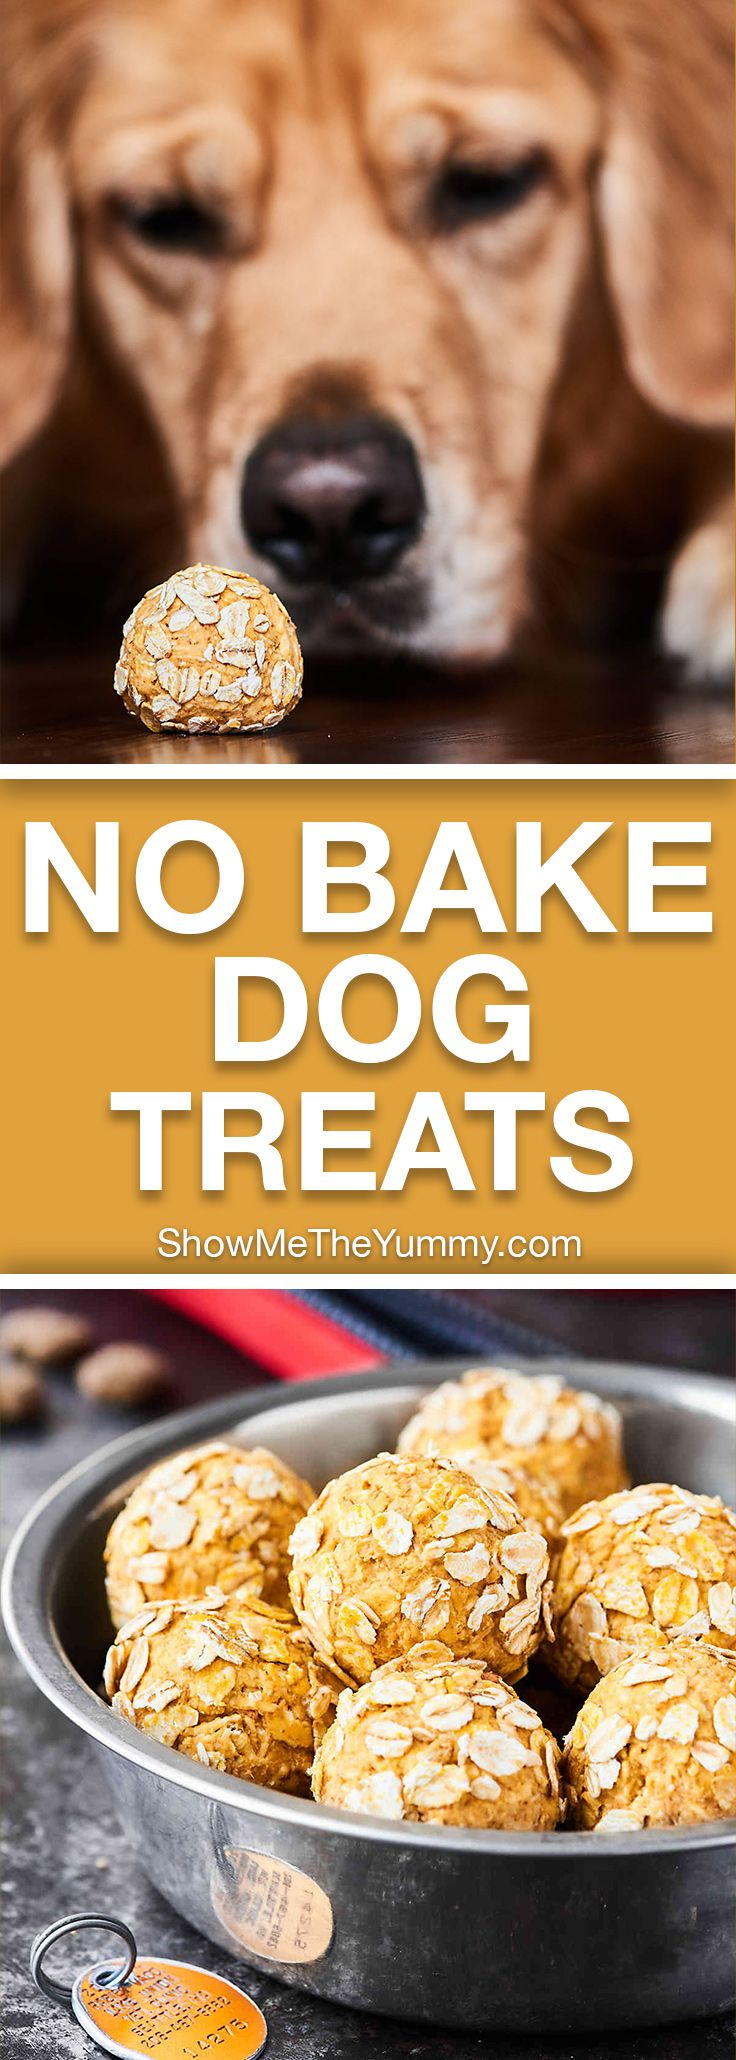 These Homemade Dog Treats are full of organic ingredients like pumpkin, peanut butter, bacon, applesauce, yogurt and require NO baking! Your fur baby will surely go nuts for these healthy, homemade treats! showmetheyummy.com #dogtreats #dogfood